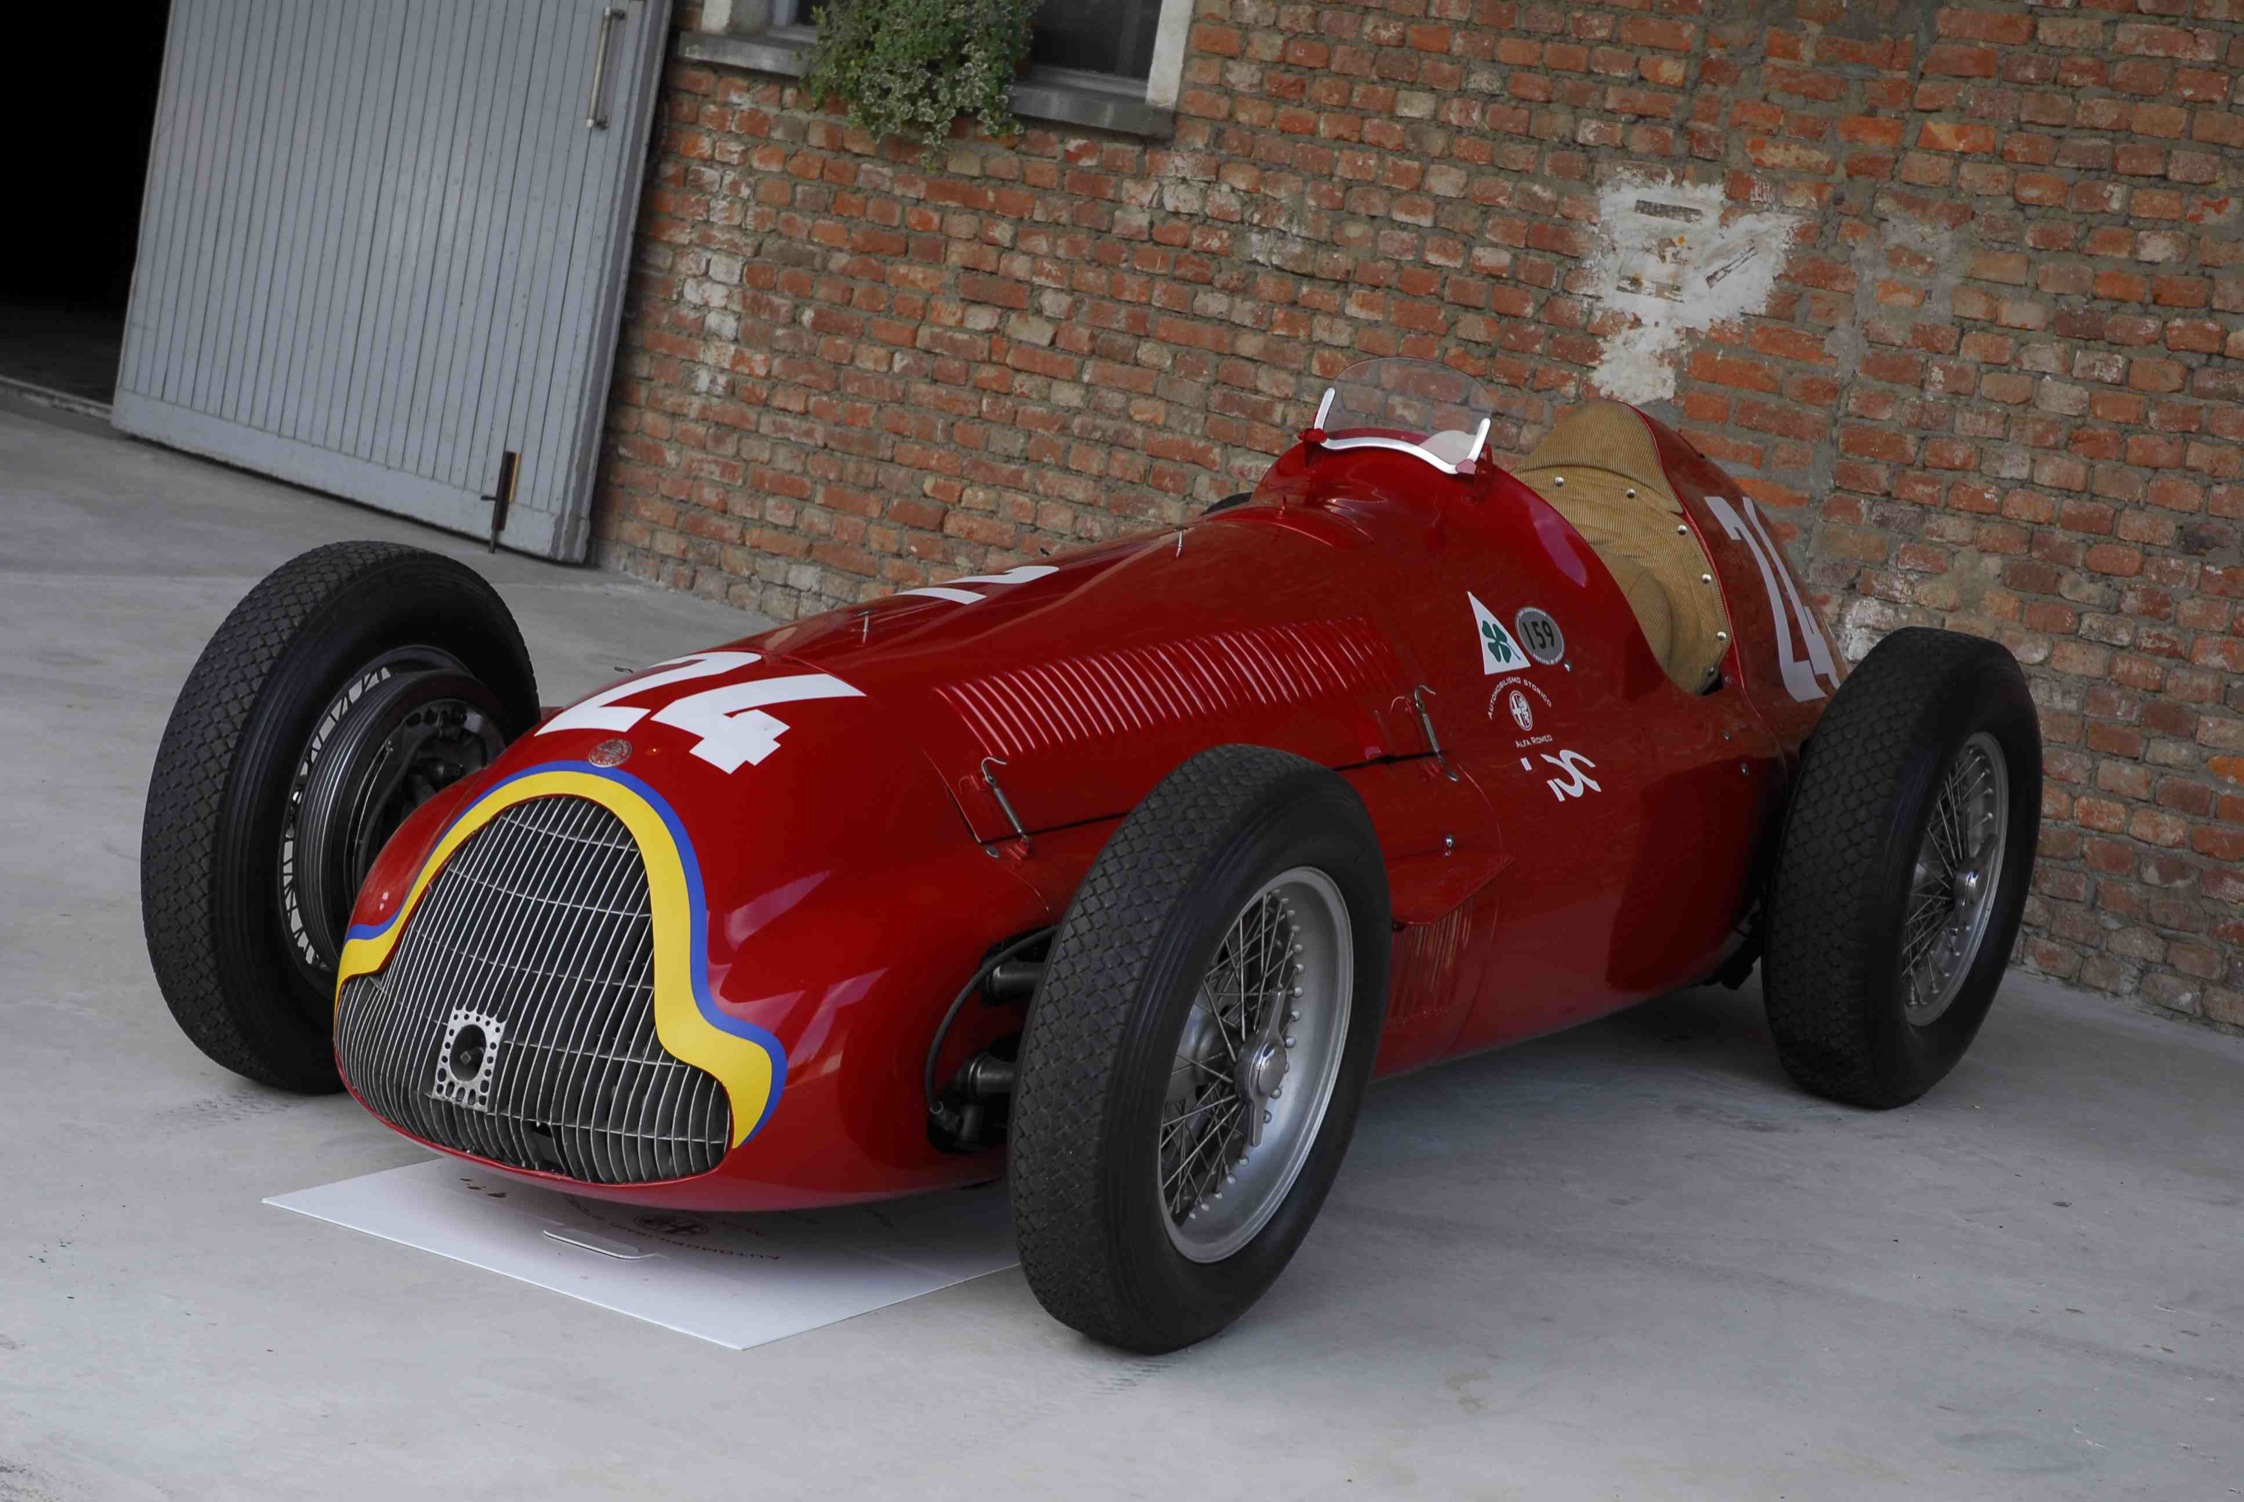 Cars like the Alfetta 159 helped establish Alfa Romeo as a motorsport force to be reckoned with